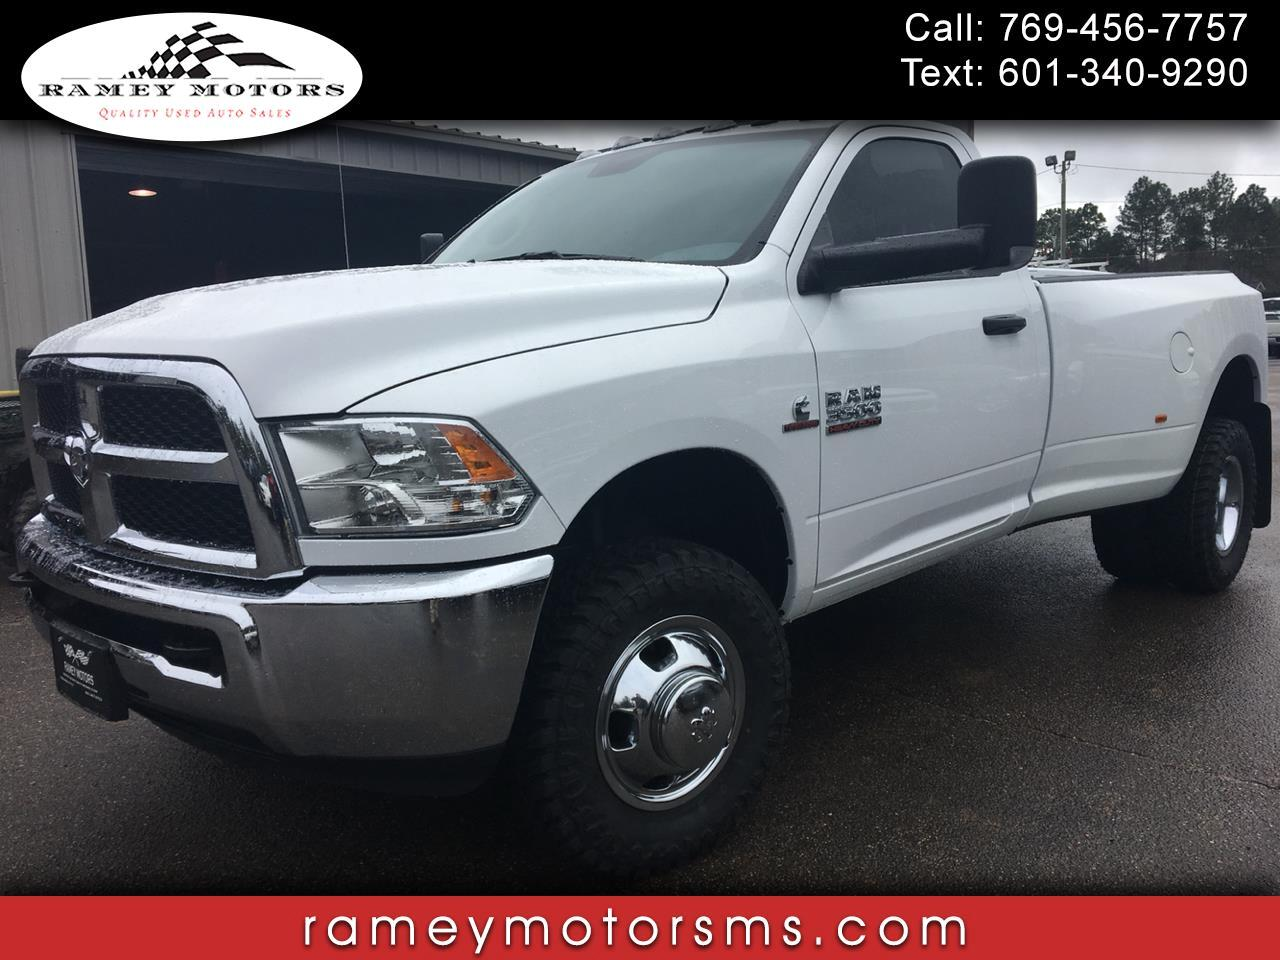 2018 RAM 3500 TRADESMAN DIESEL CUSTOM LEVELED